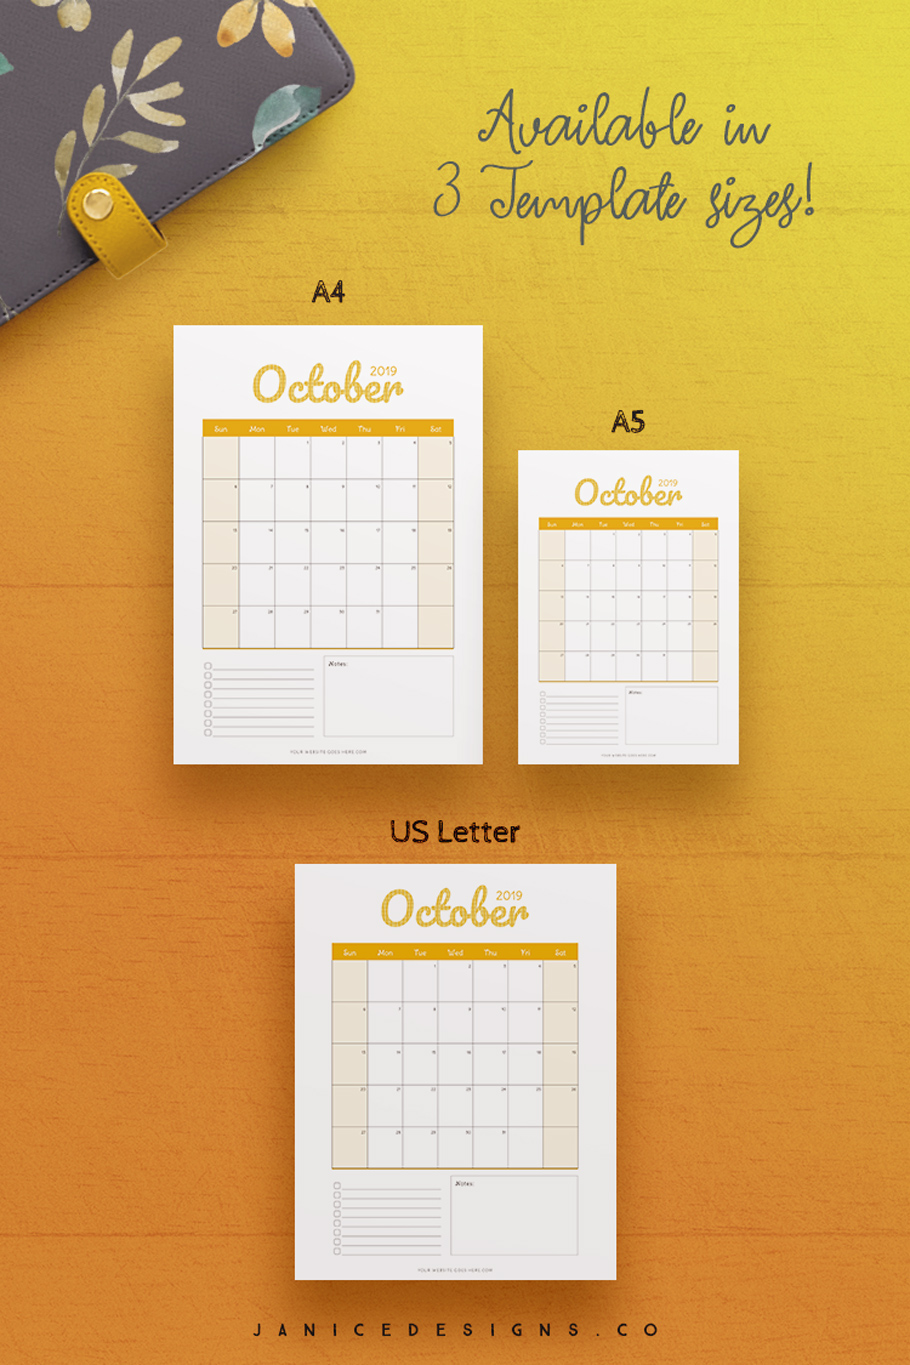 2019 Calendar InDesign Template for Commercial Use example image 6